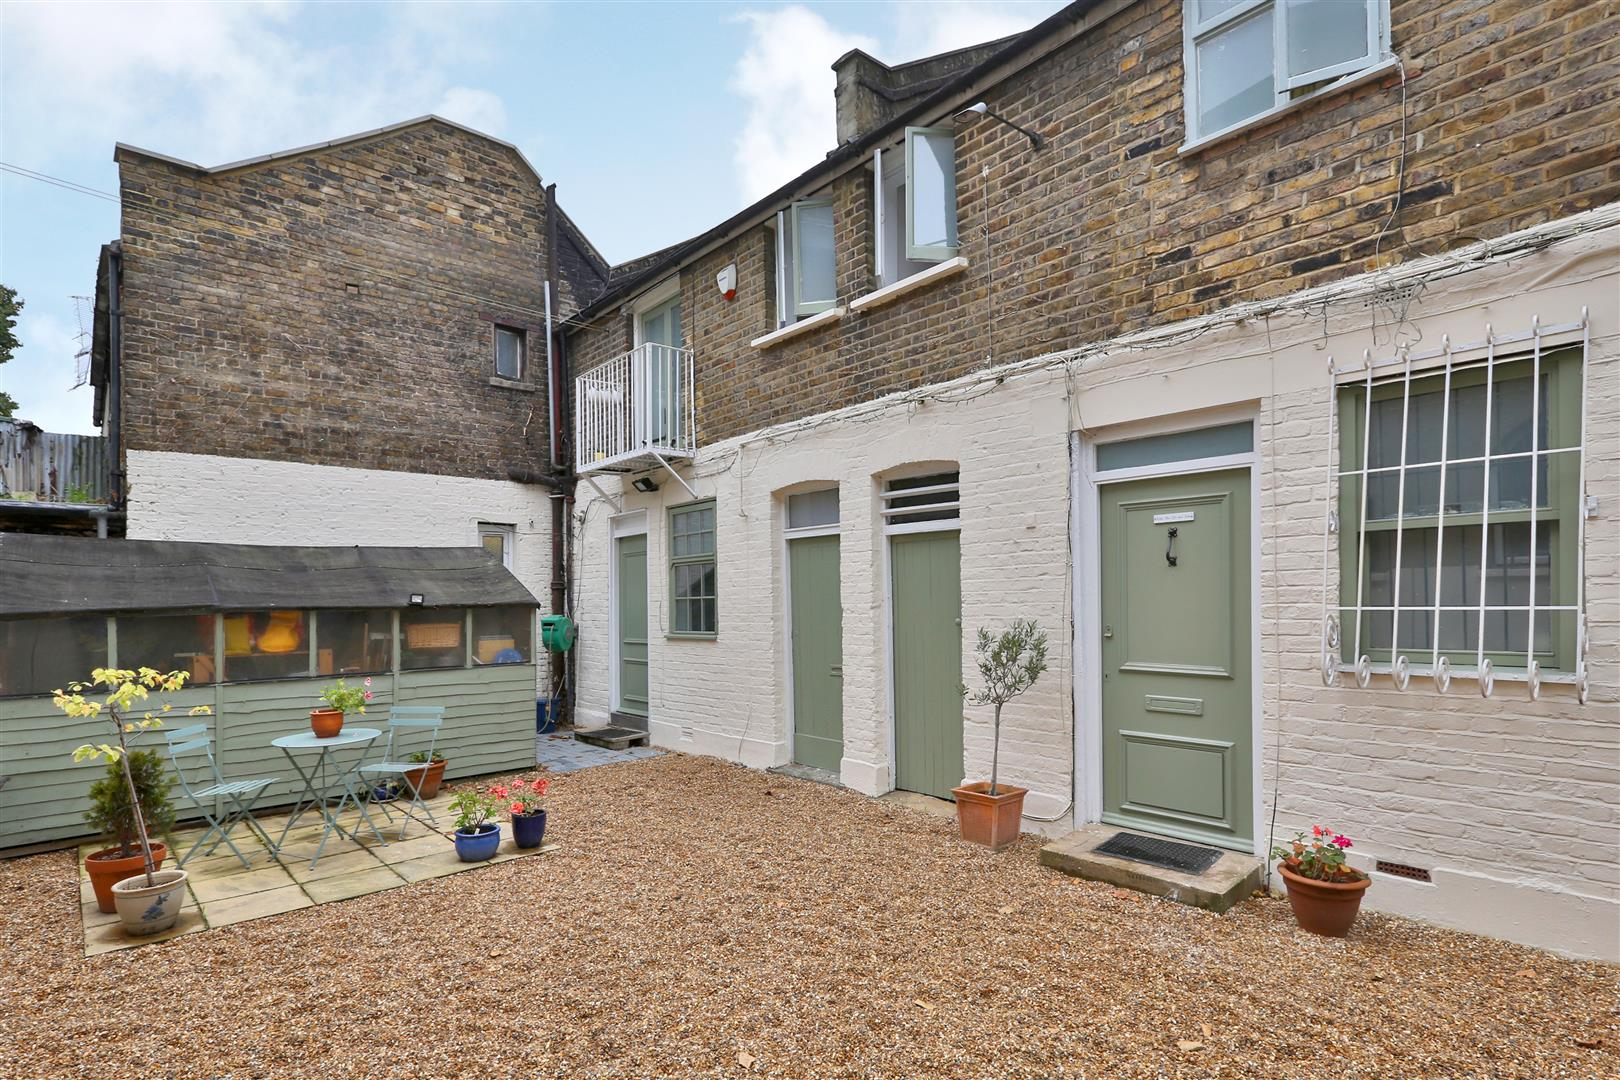 2 Bedrooms House for sale in Lampard Grove, London